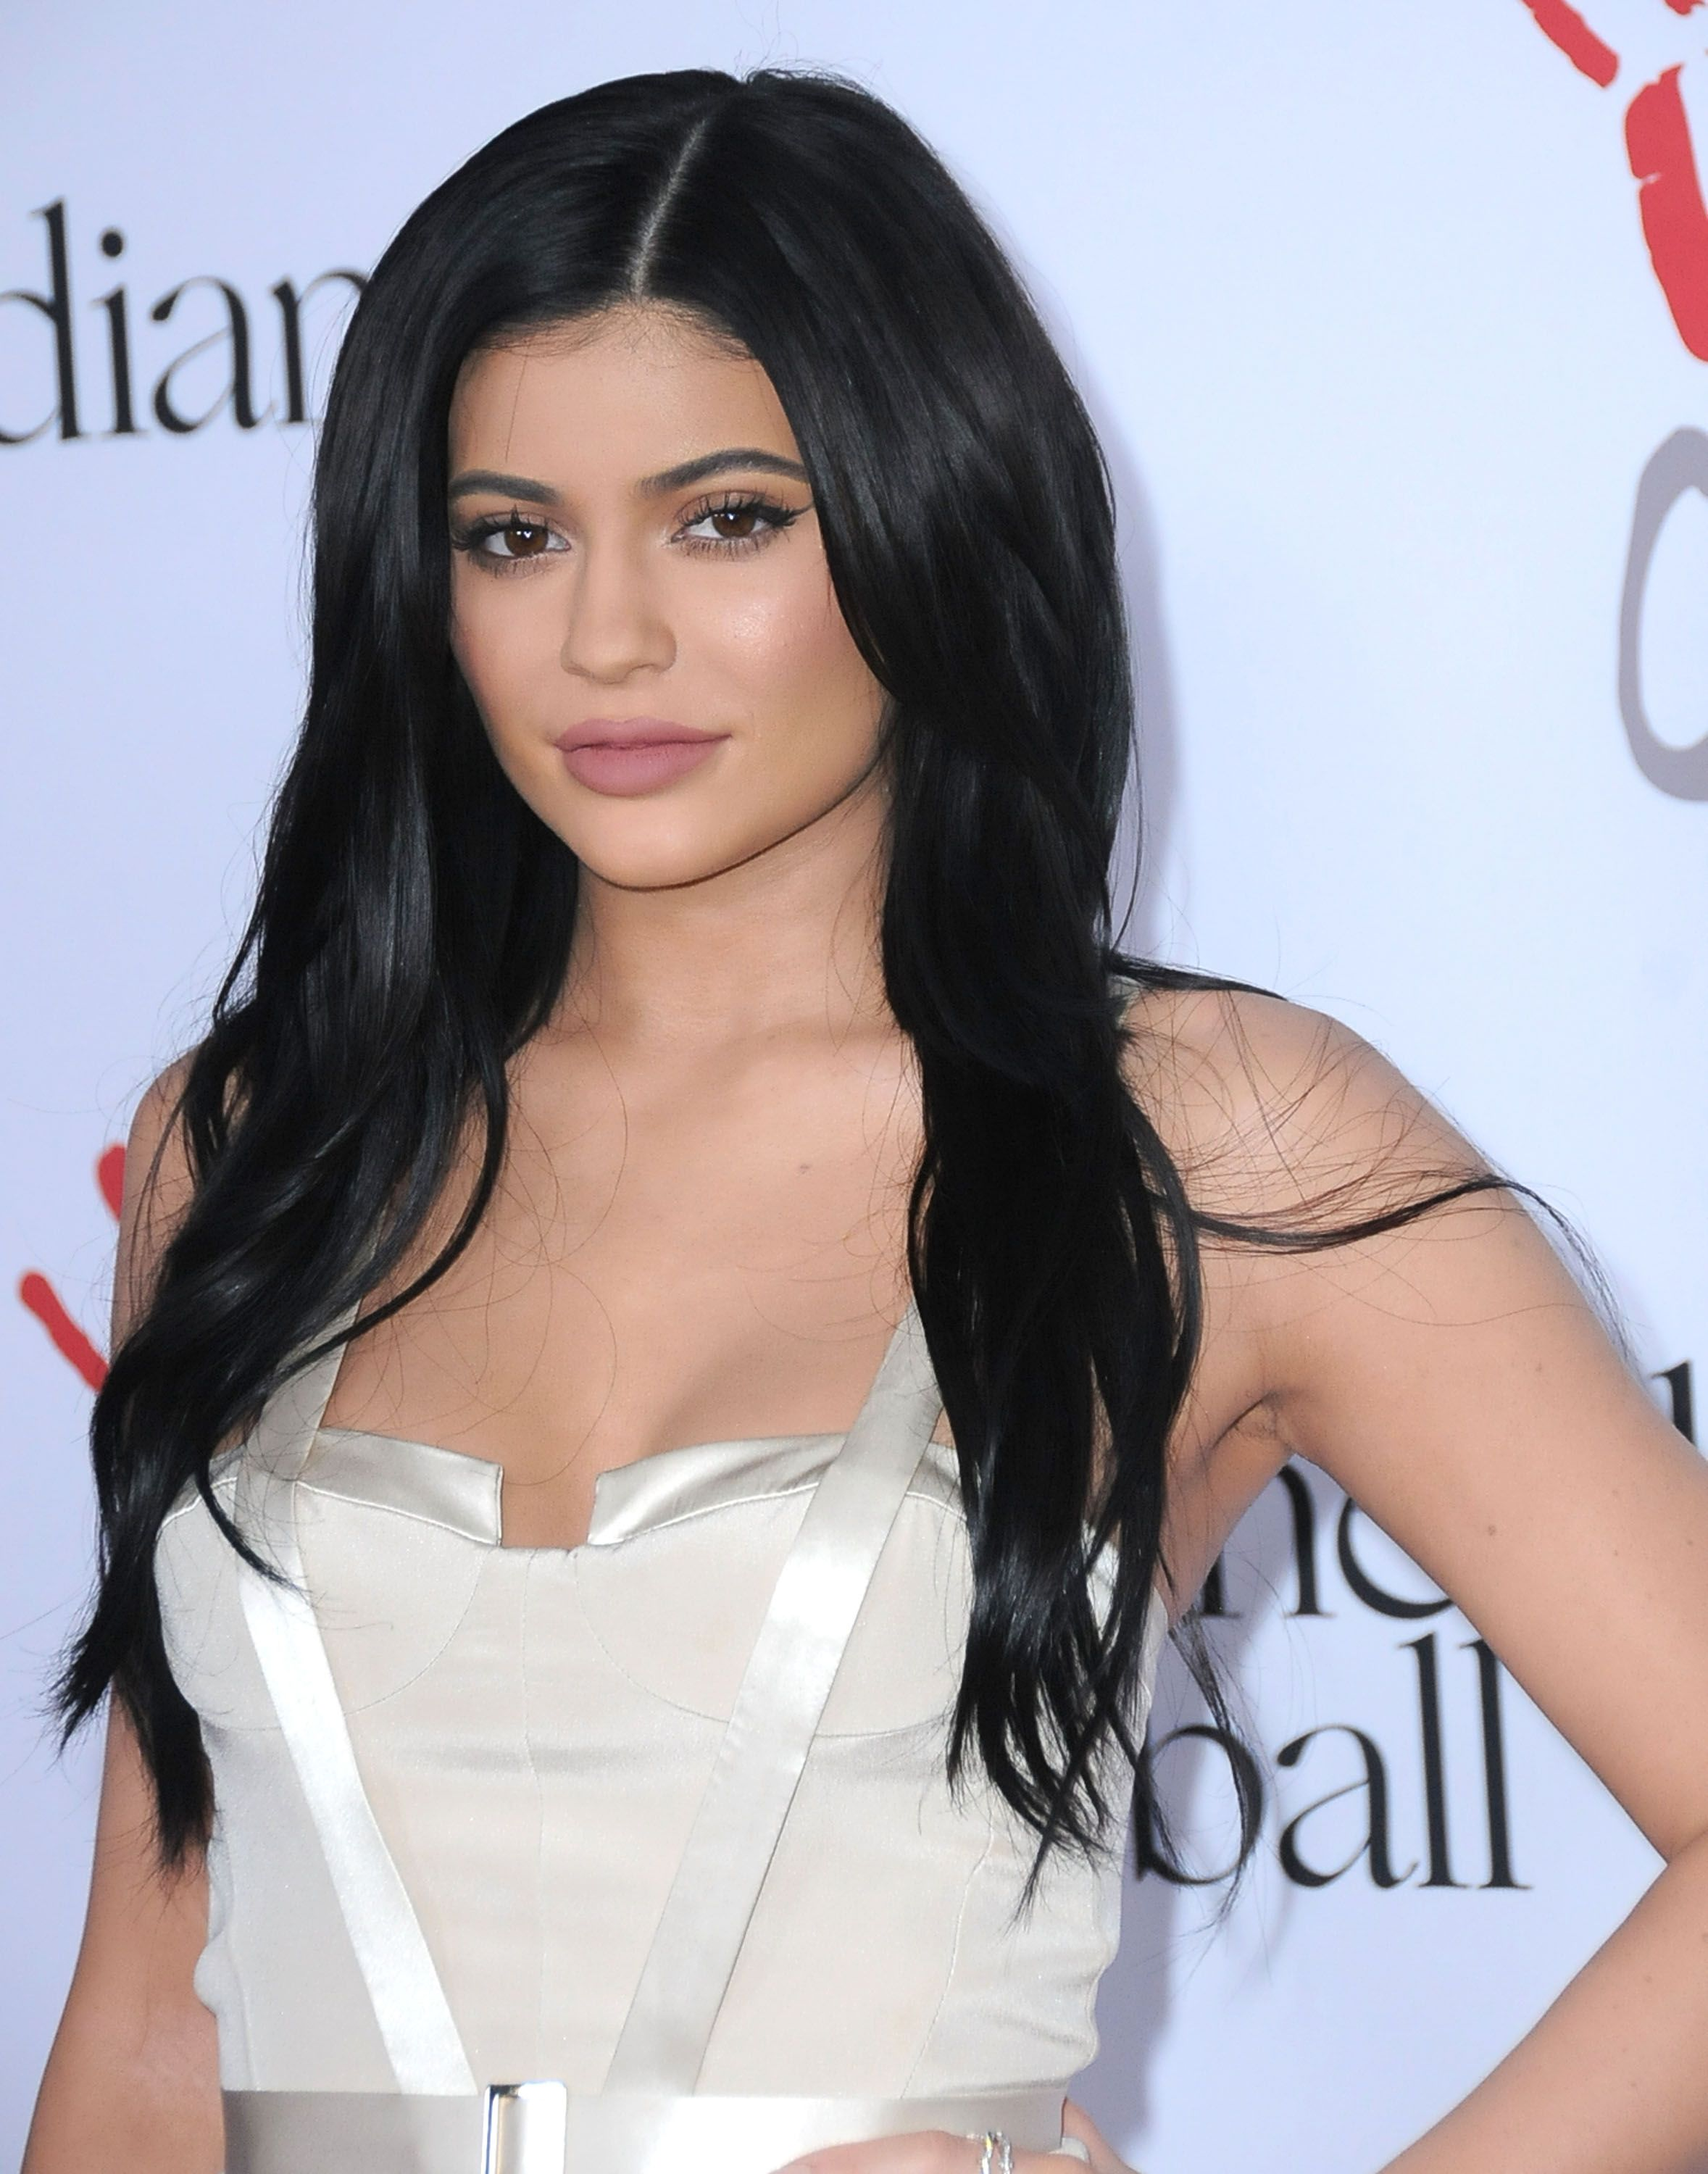 Kylie Jenner during the 2nd Annual Diamond Ball at The Barker Hangar on December 10, 2015 in Santa Monica, California. | Source: Getty Images